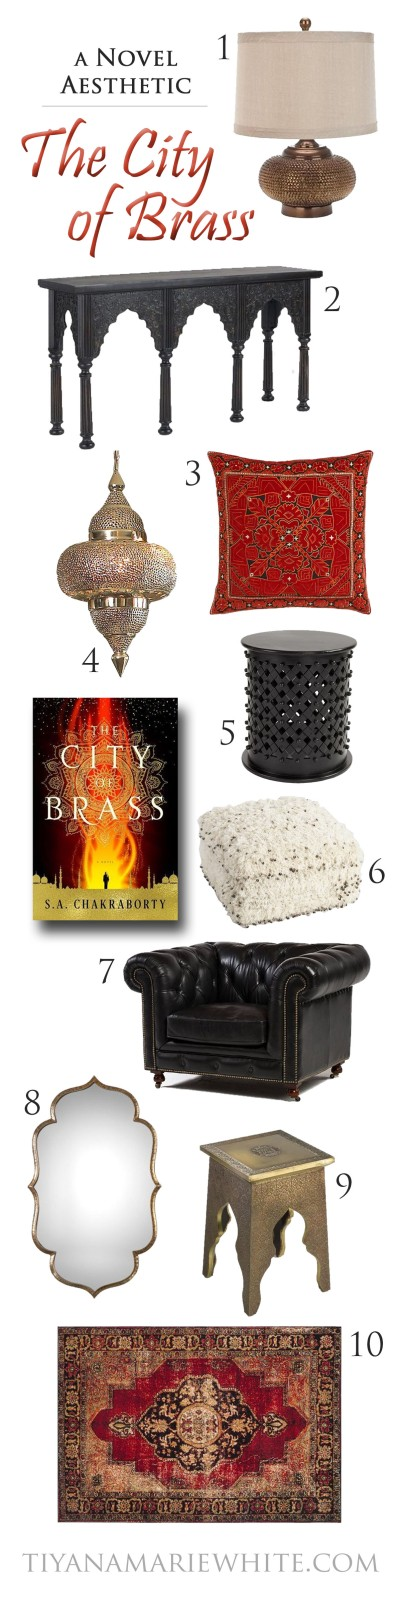 A Novel Aesthetic: The City of Brass | The Chandra Tribune